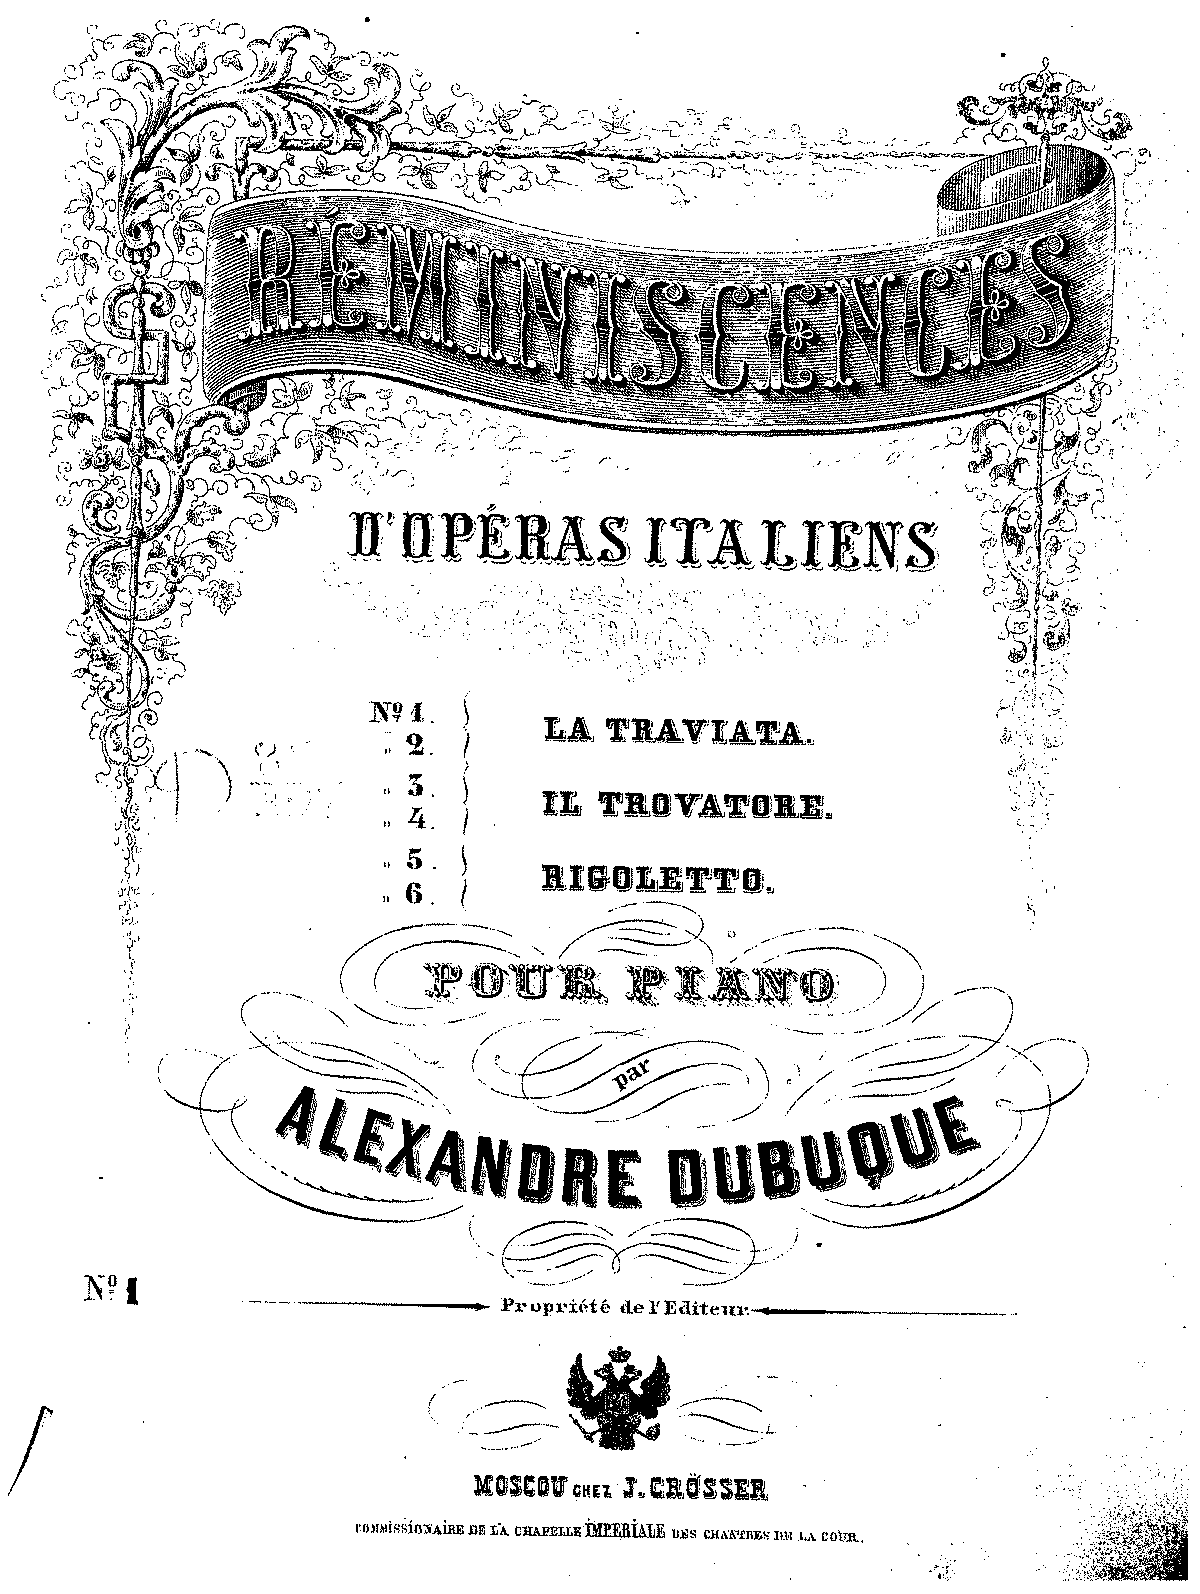 PMLP214904-Dubuque - Reminiscences d'operas italiens - La Traviata.pdf